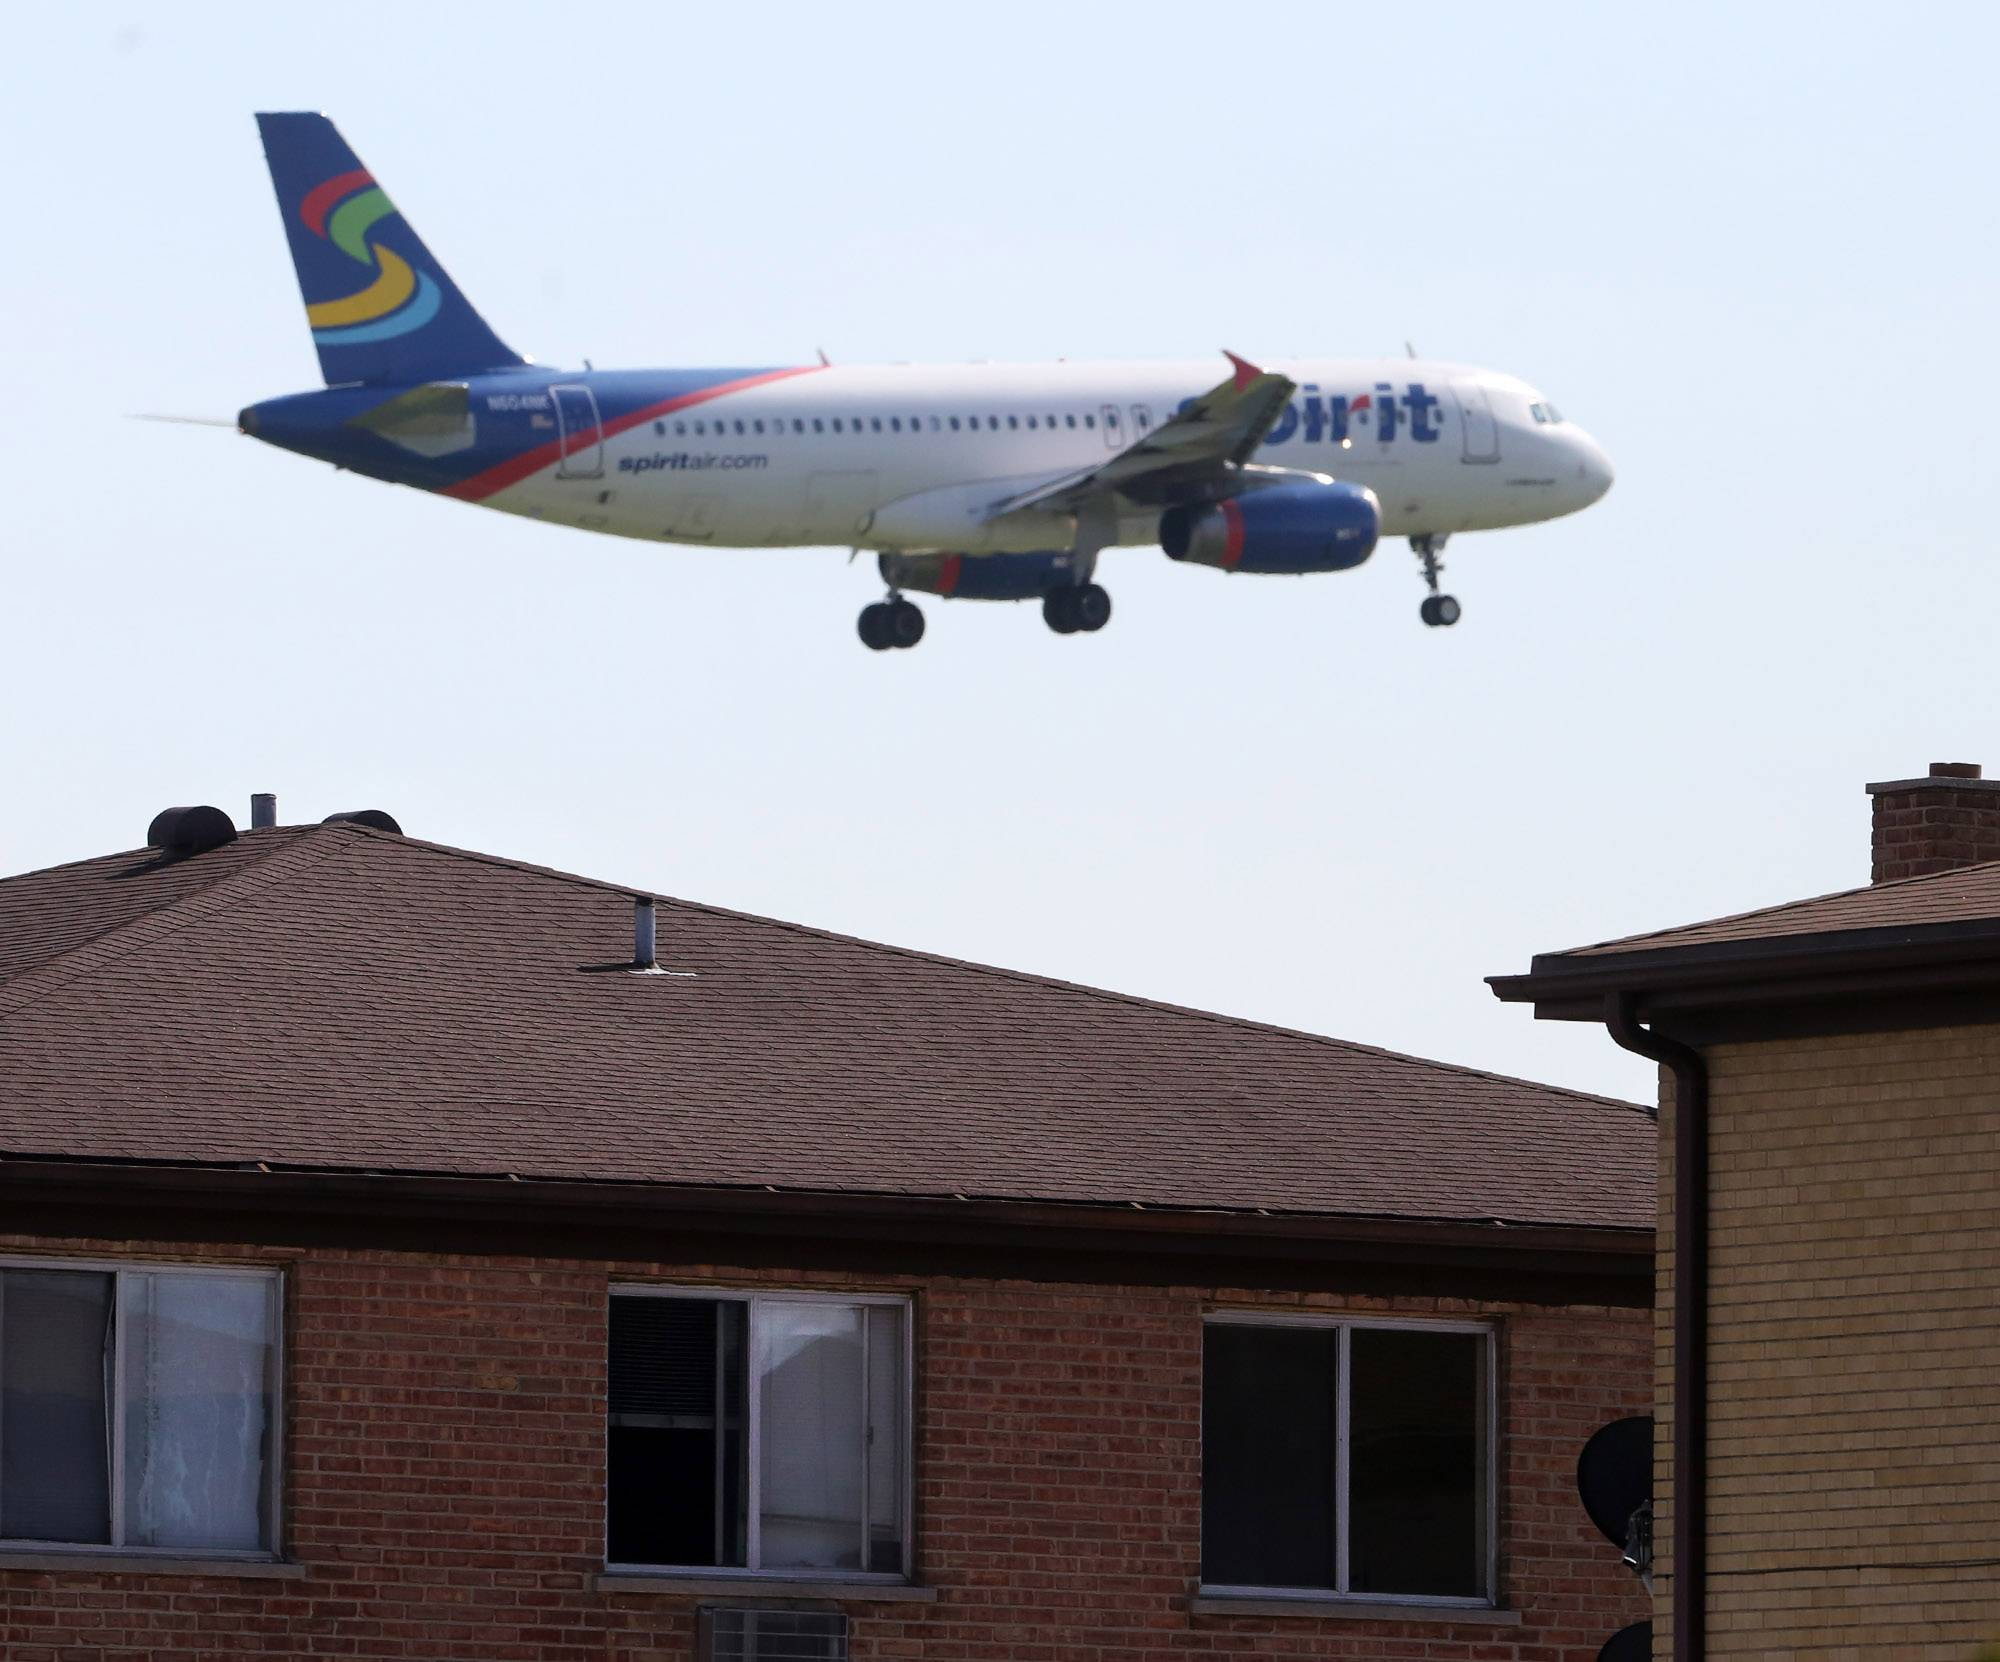 O'Hare noise complaints in August more than 10 times last year's